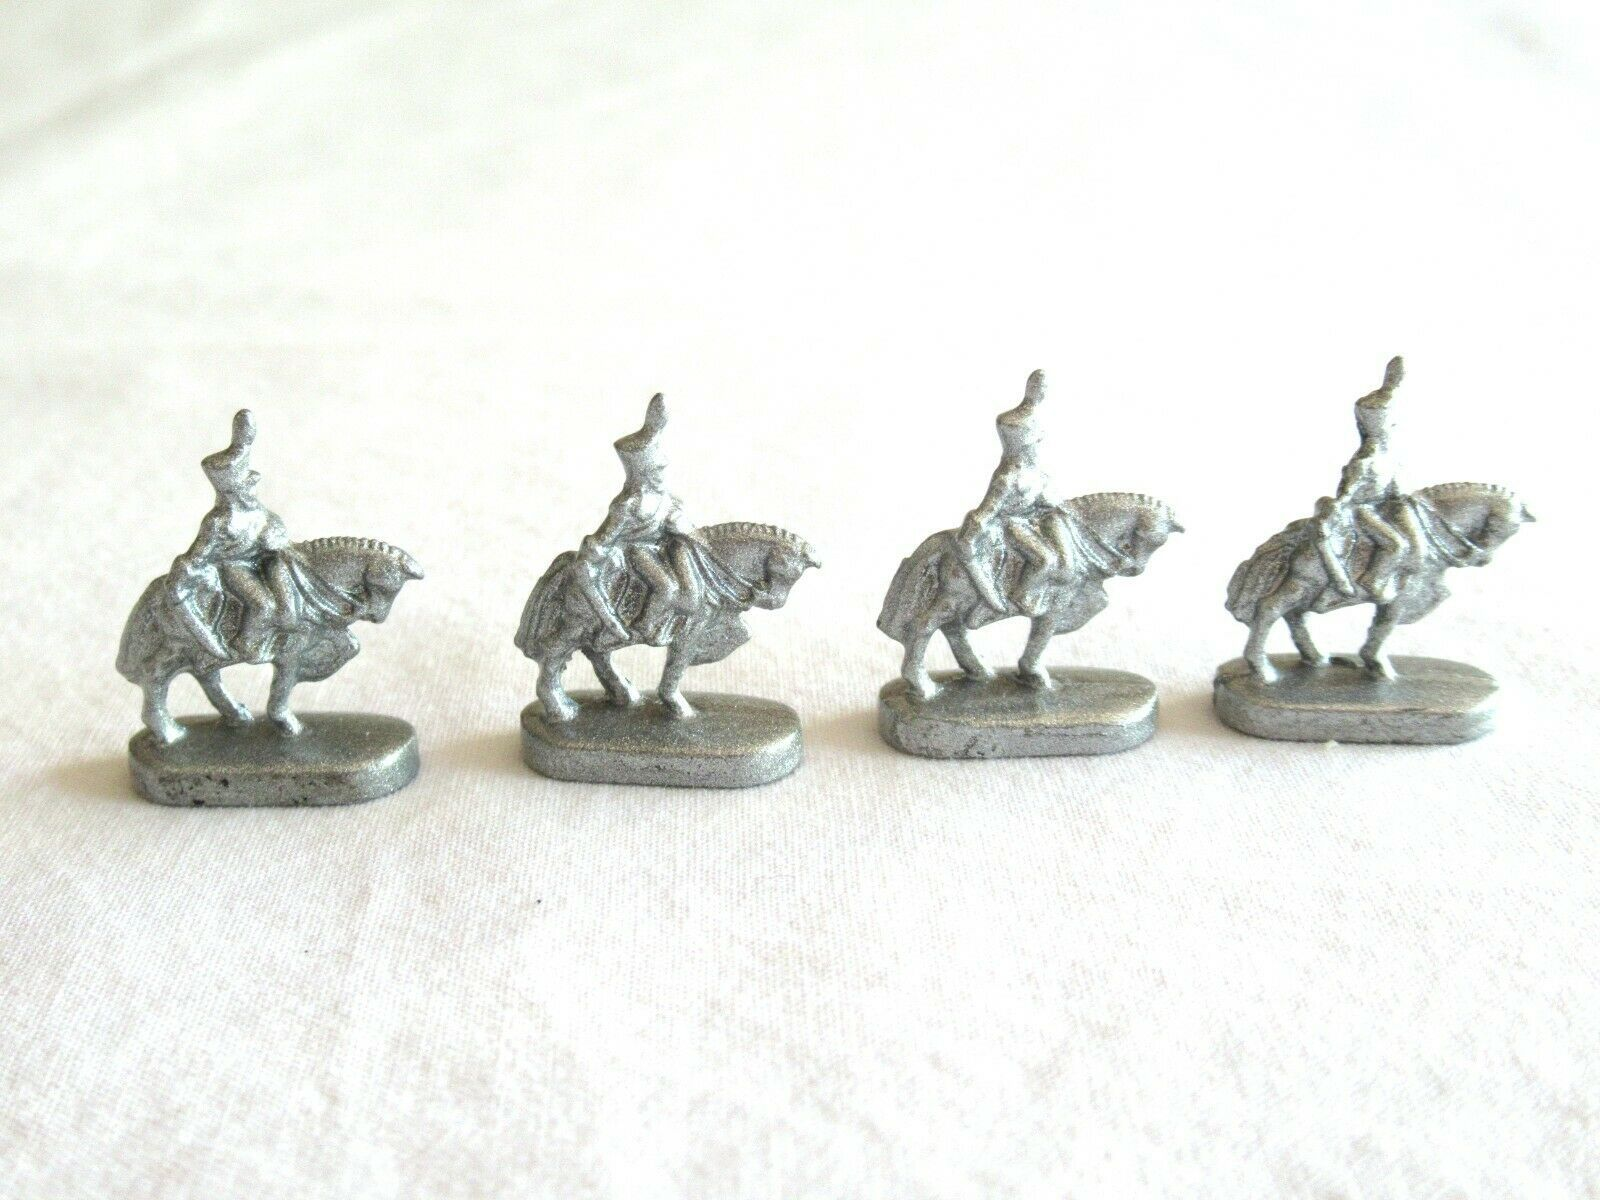 Primary image for 4x Risk 40th Anniversary Edition Board Game Metal Cavalry Soldier Silver Army